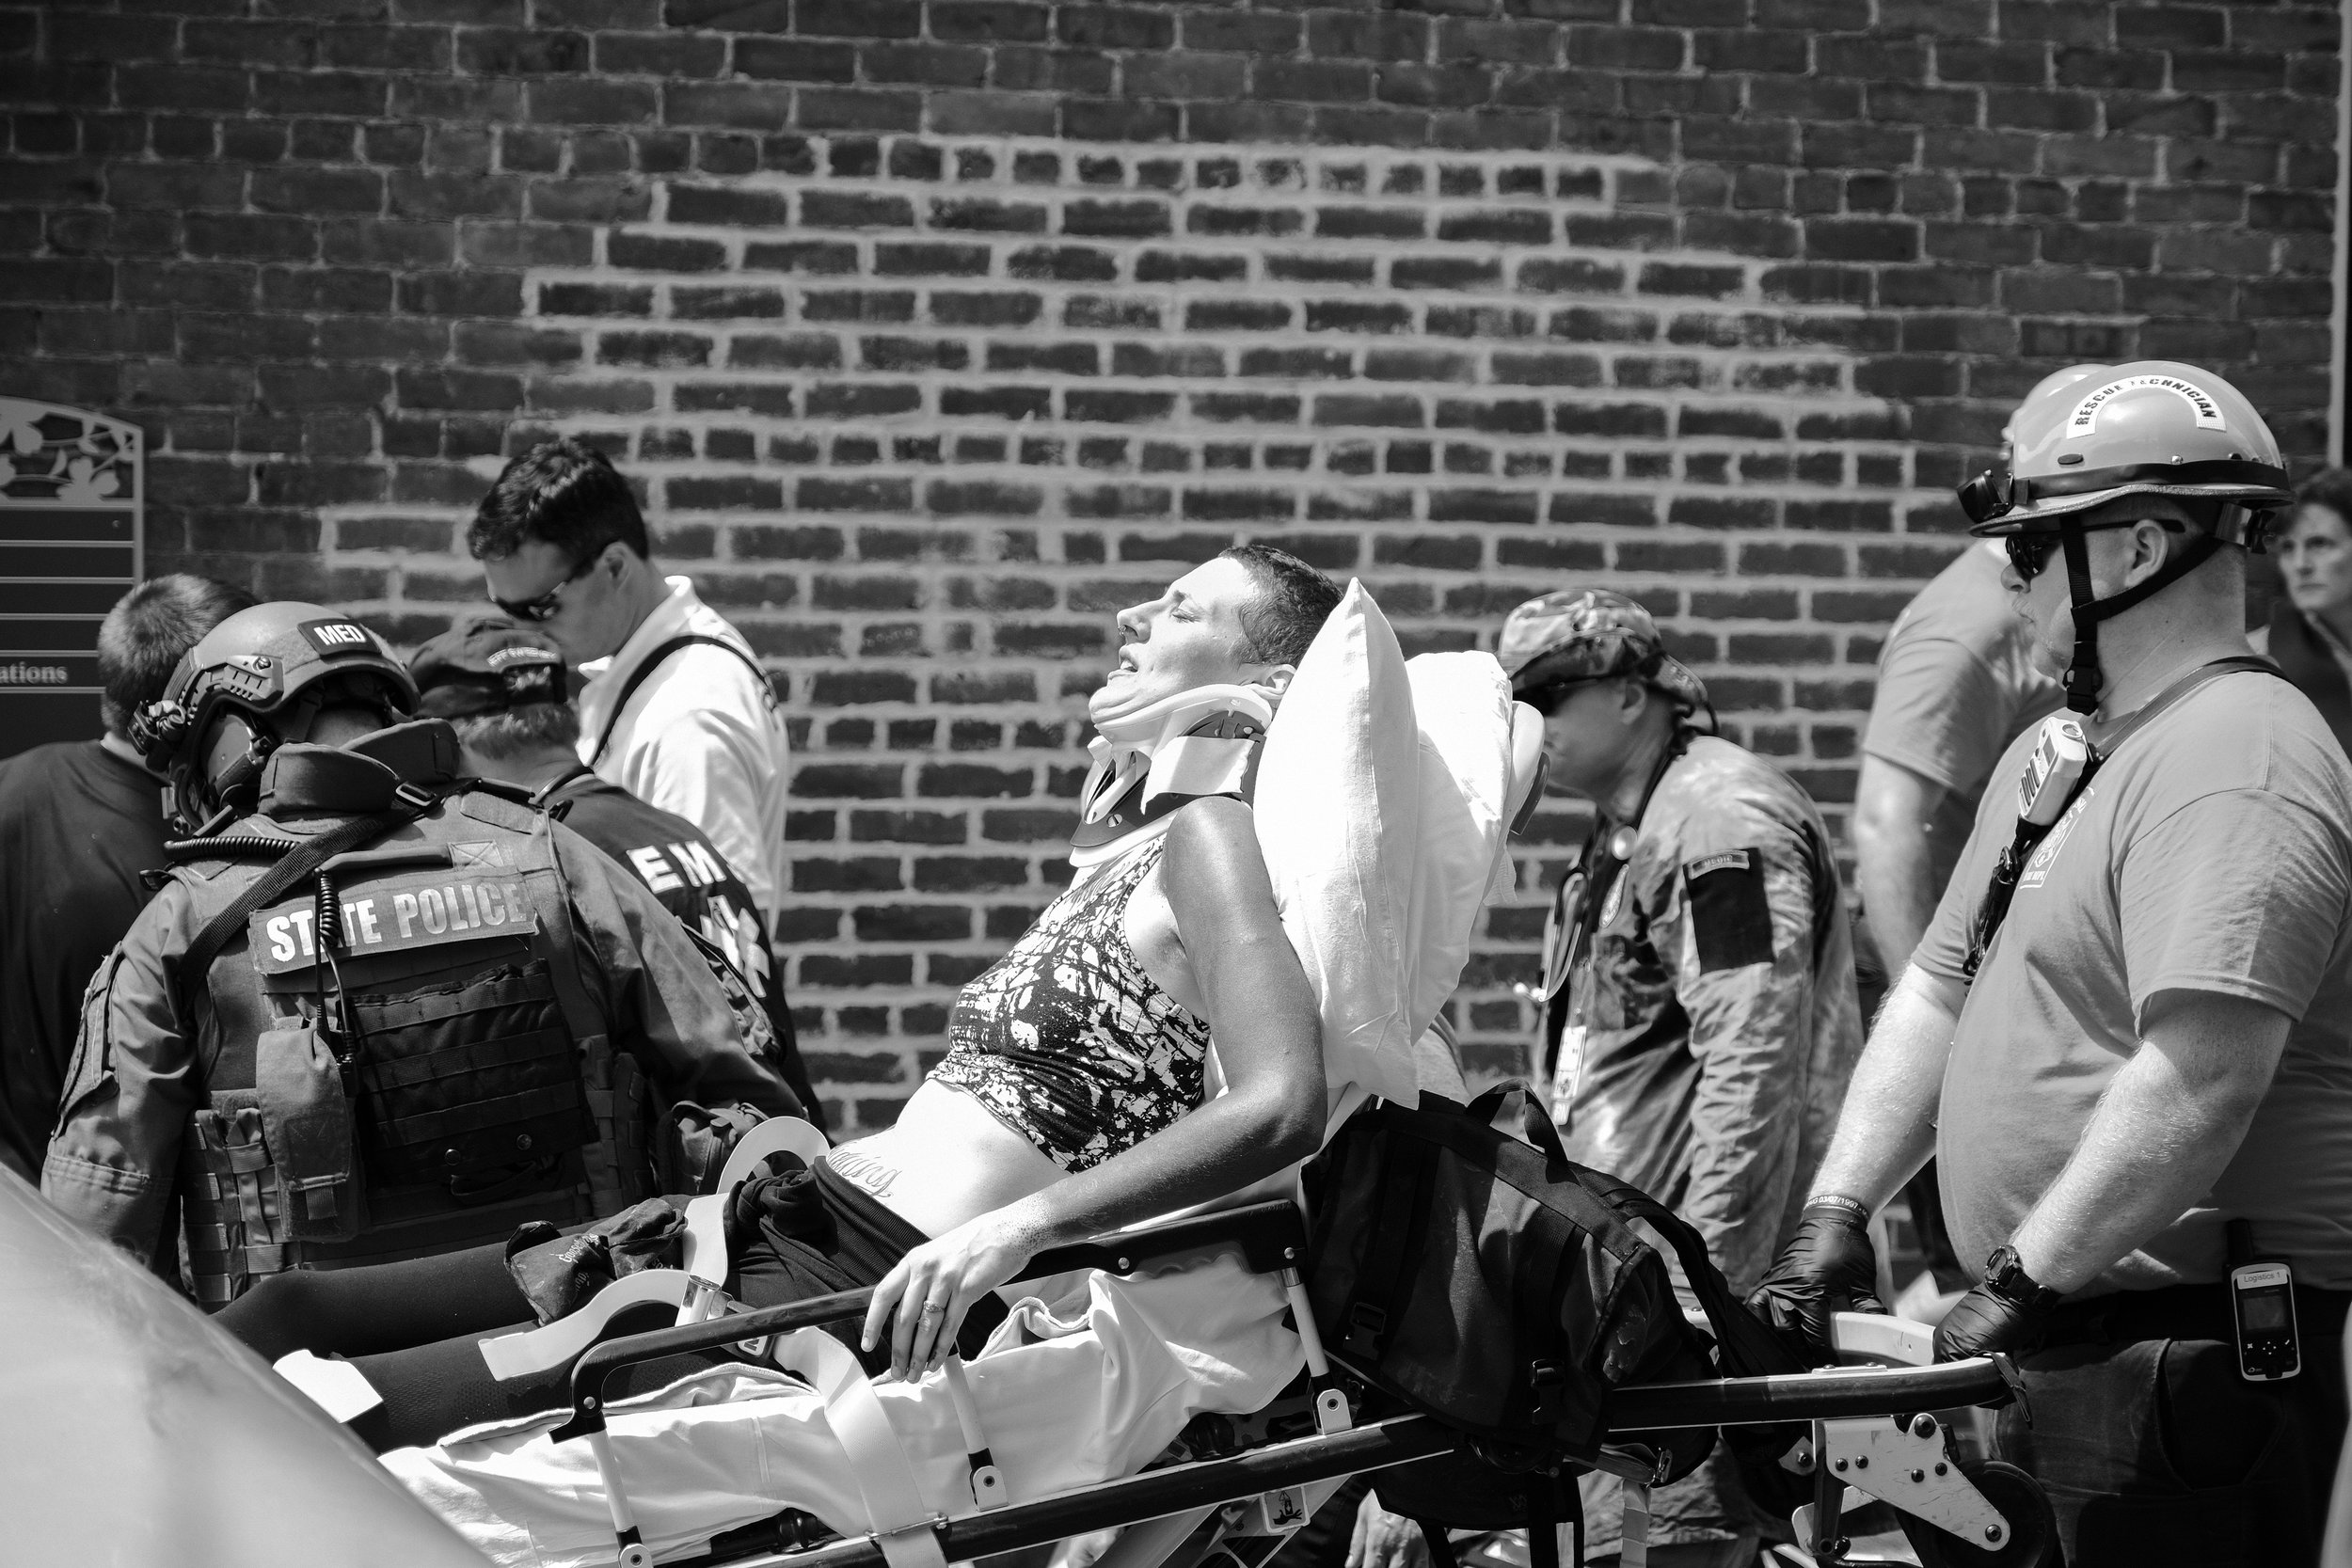 Eventually, Charlottesville EMTs arrived and began to move the injured and dead from the streets.